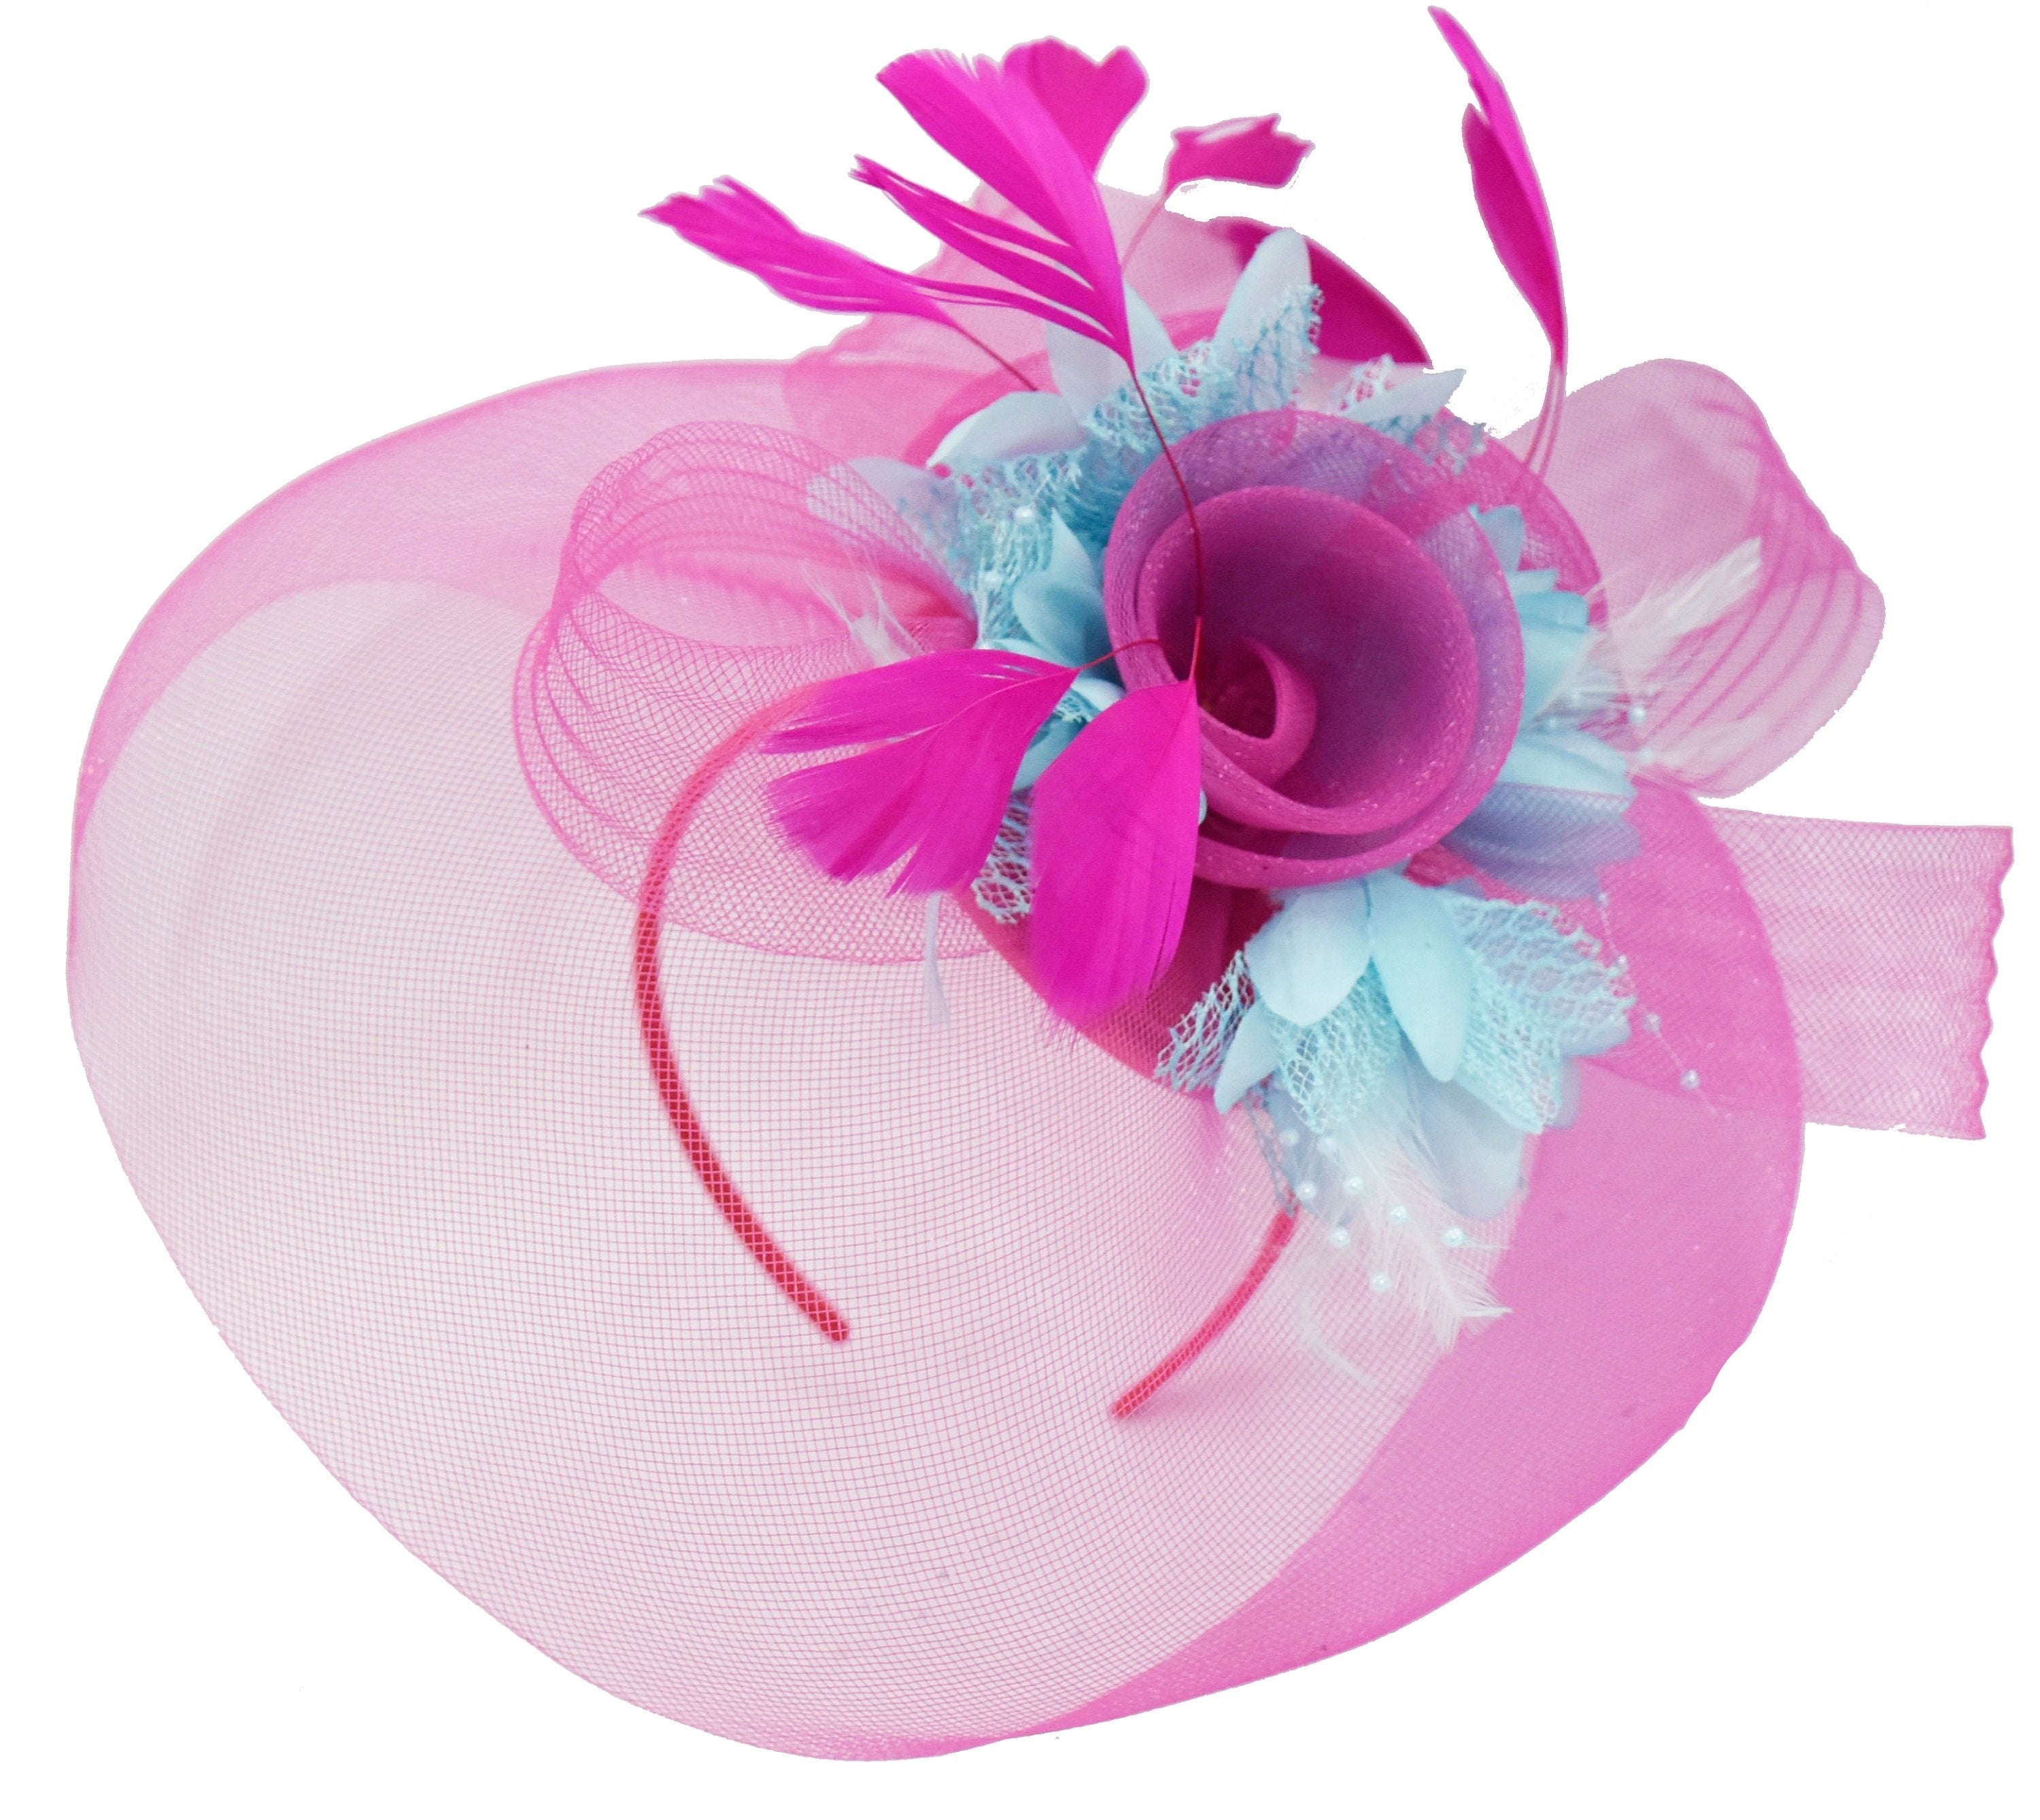 Caprilite Fuchsia Hot Pink and Light Blue Fascinator Hat Veil Net Hair Clip Ascot Derby Races Wedding Headband Feather Flower